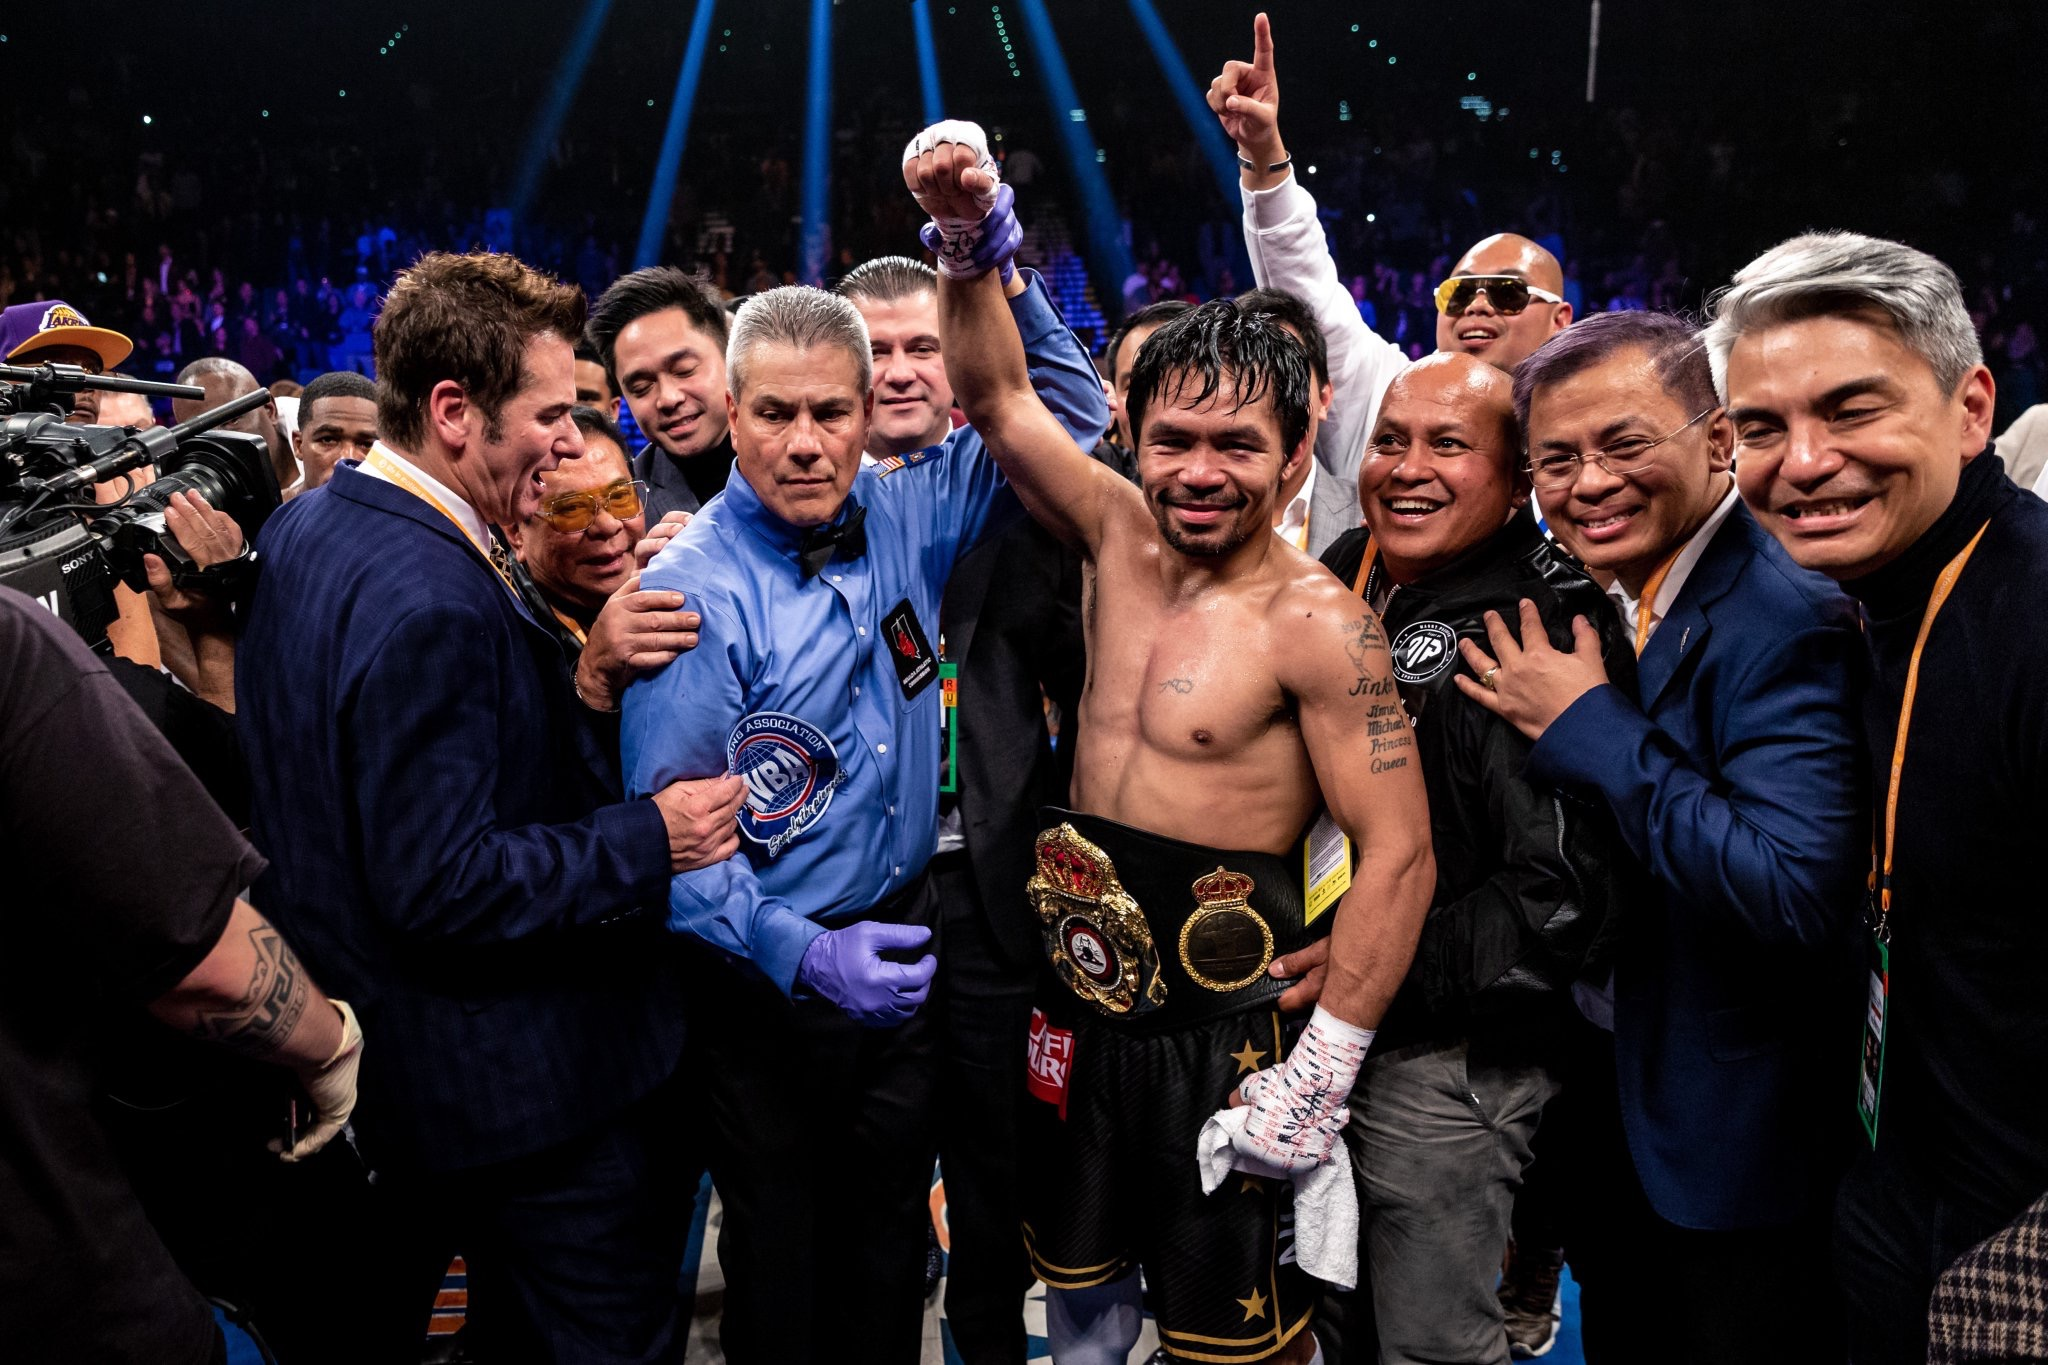 F516F72E 0CE2 4B89 BC1B 7CCAB597F8C3 - Pacquiao Scratches Cornea, Talks With Mayweather, Finds Home Broken Into